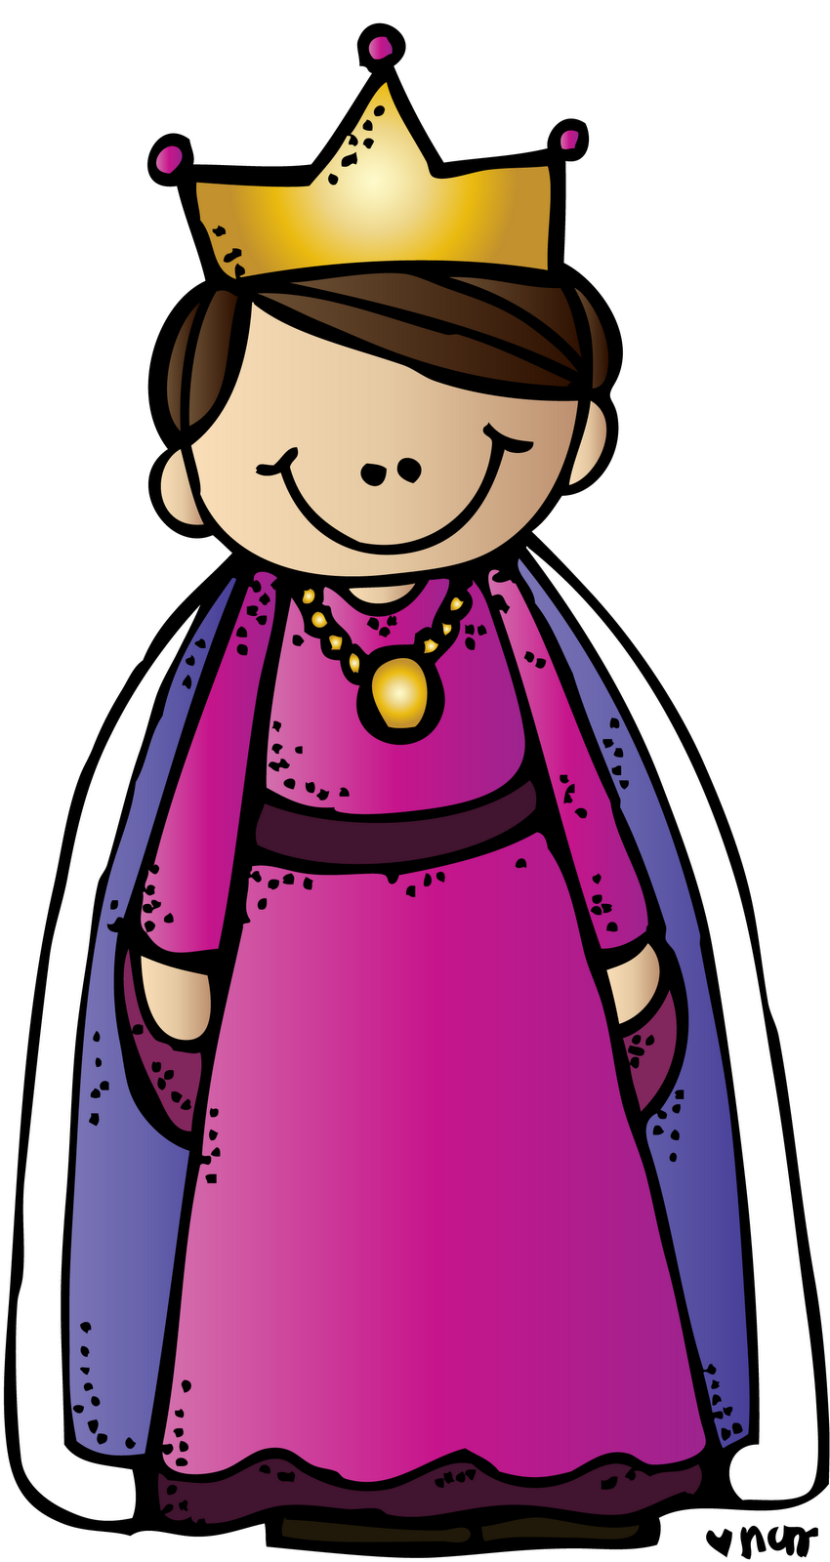 Homecoming King Crown Clipart-Homecoming King Crown Clipart-8